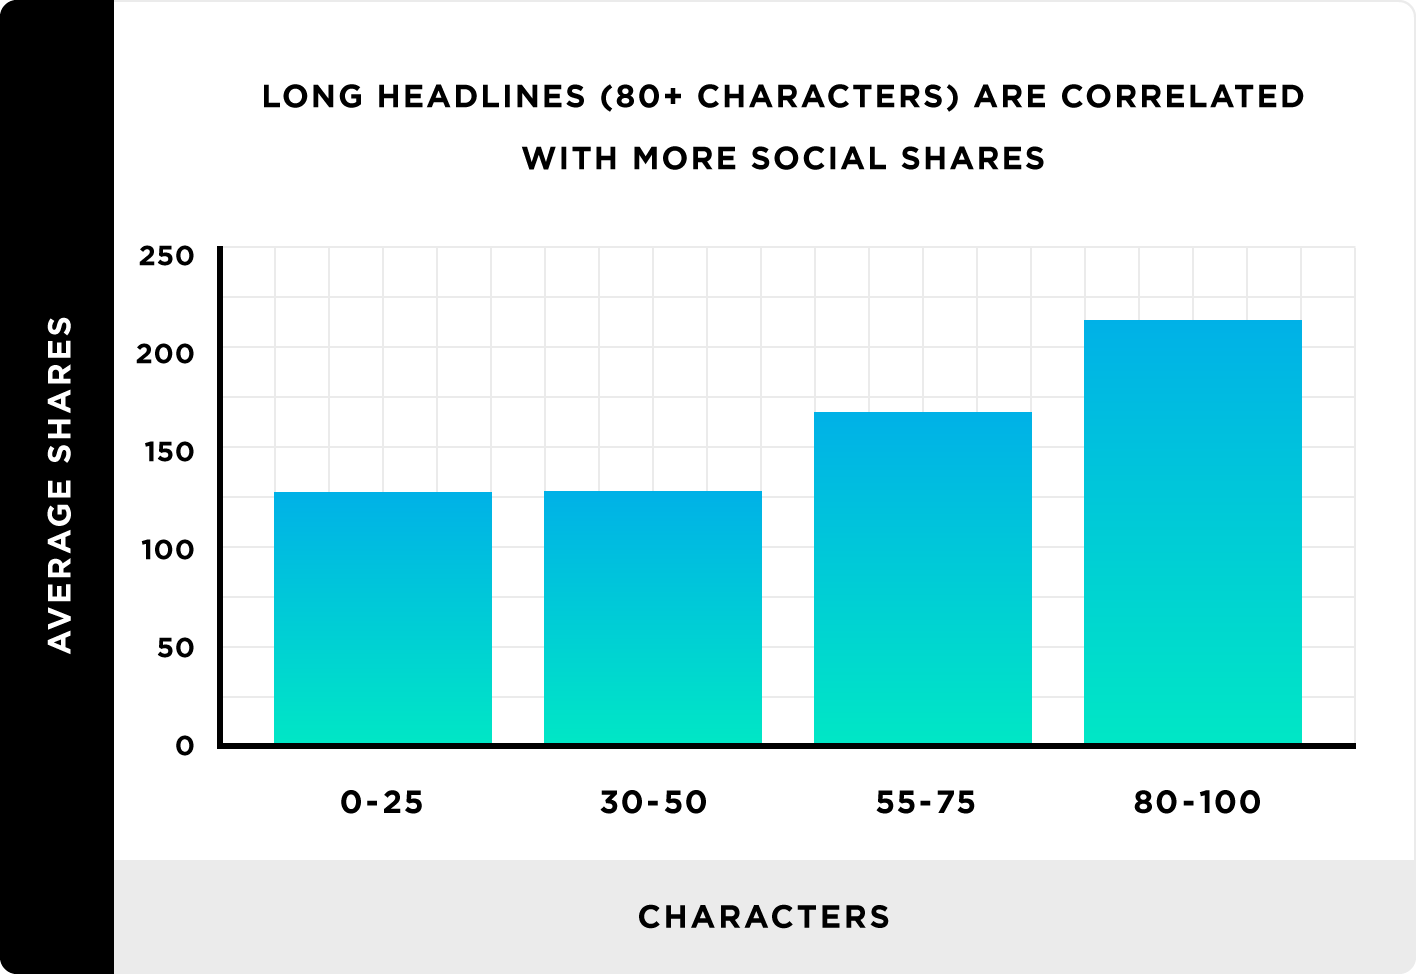 Long headlines (100+ characters) are correlated with social shares